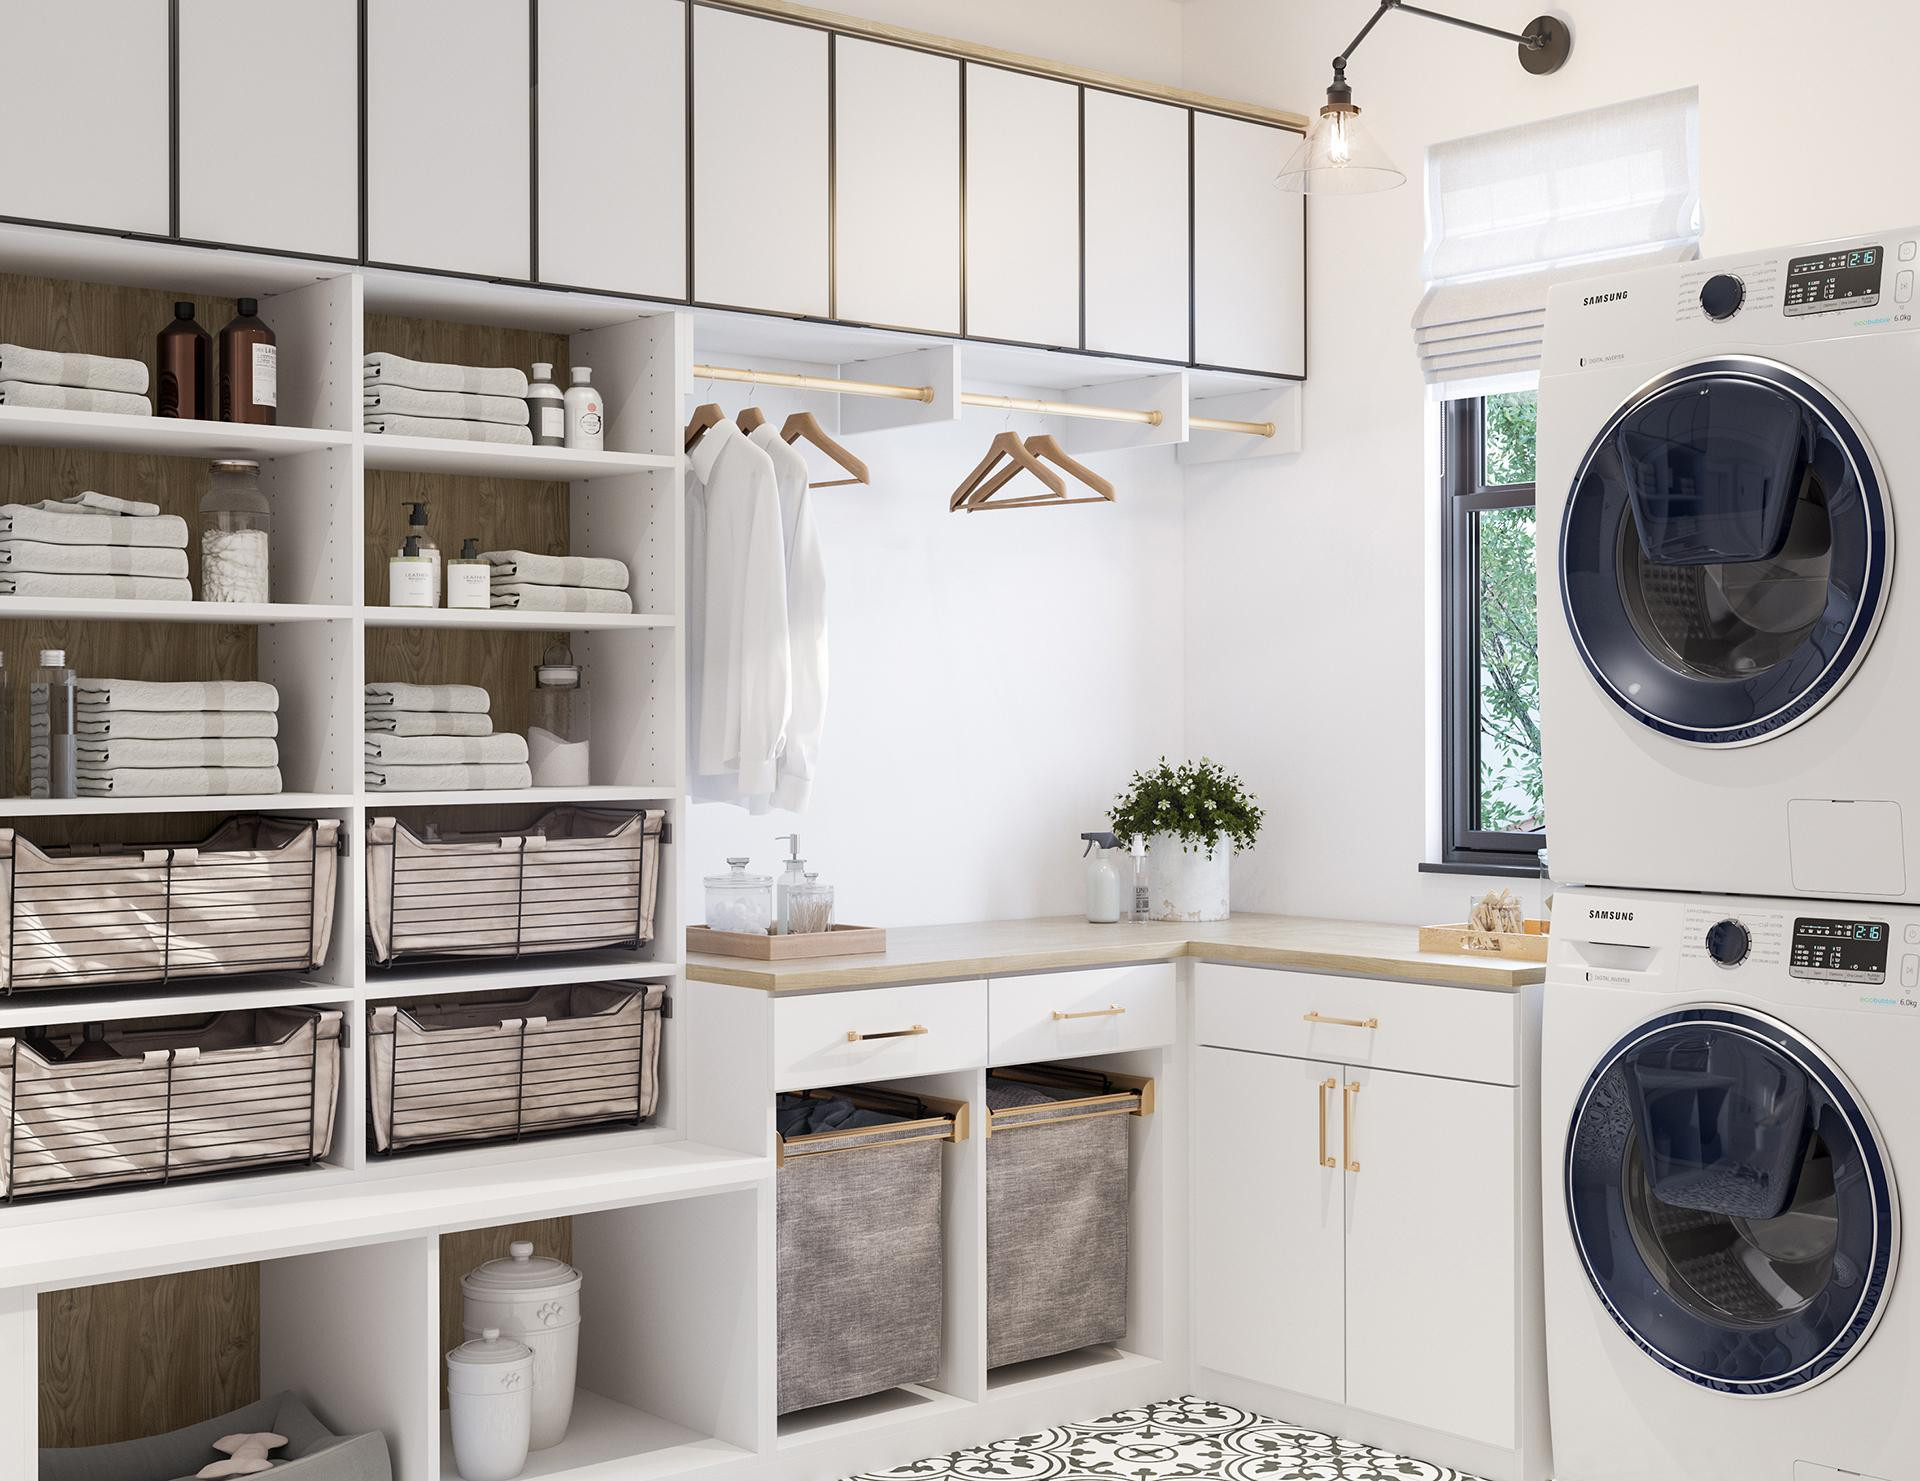 Best ideas about The Laundry Room . Save or Pin Laundry Room Cabinets & Storage Ideas by California Closets Now.